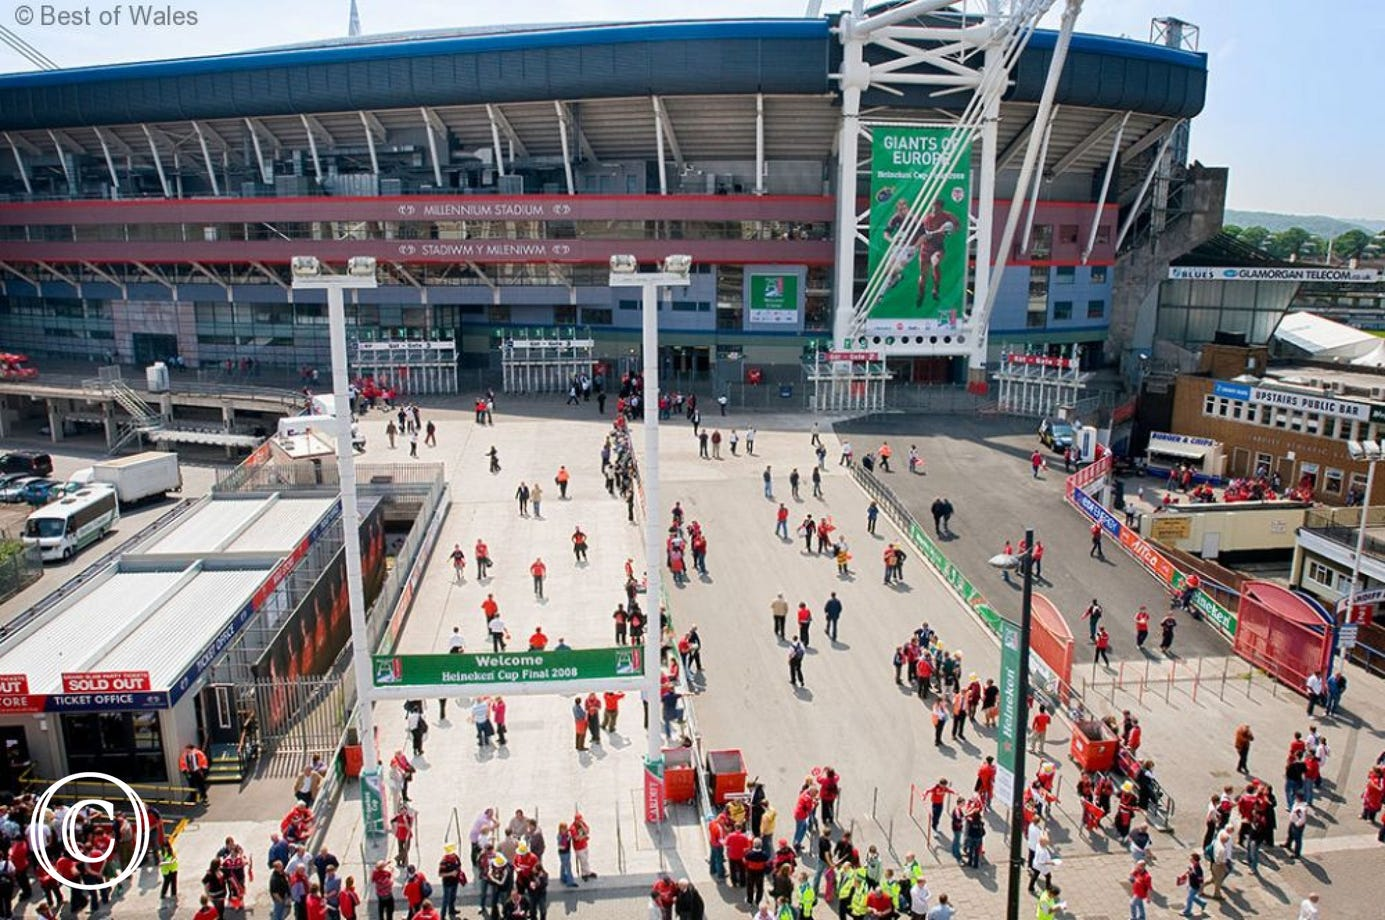 Millennium Stadium within walking distance